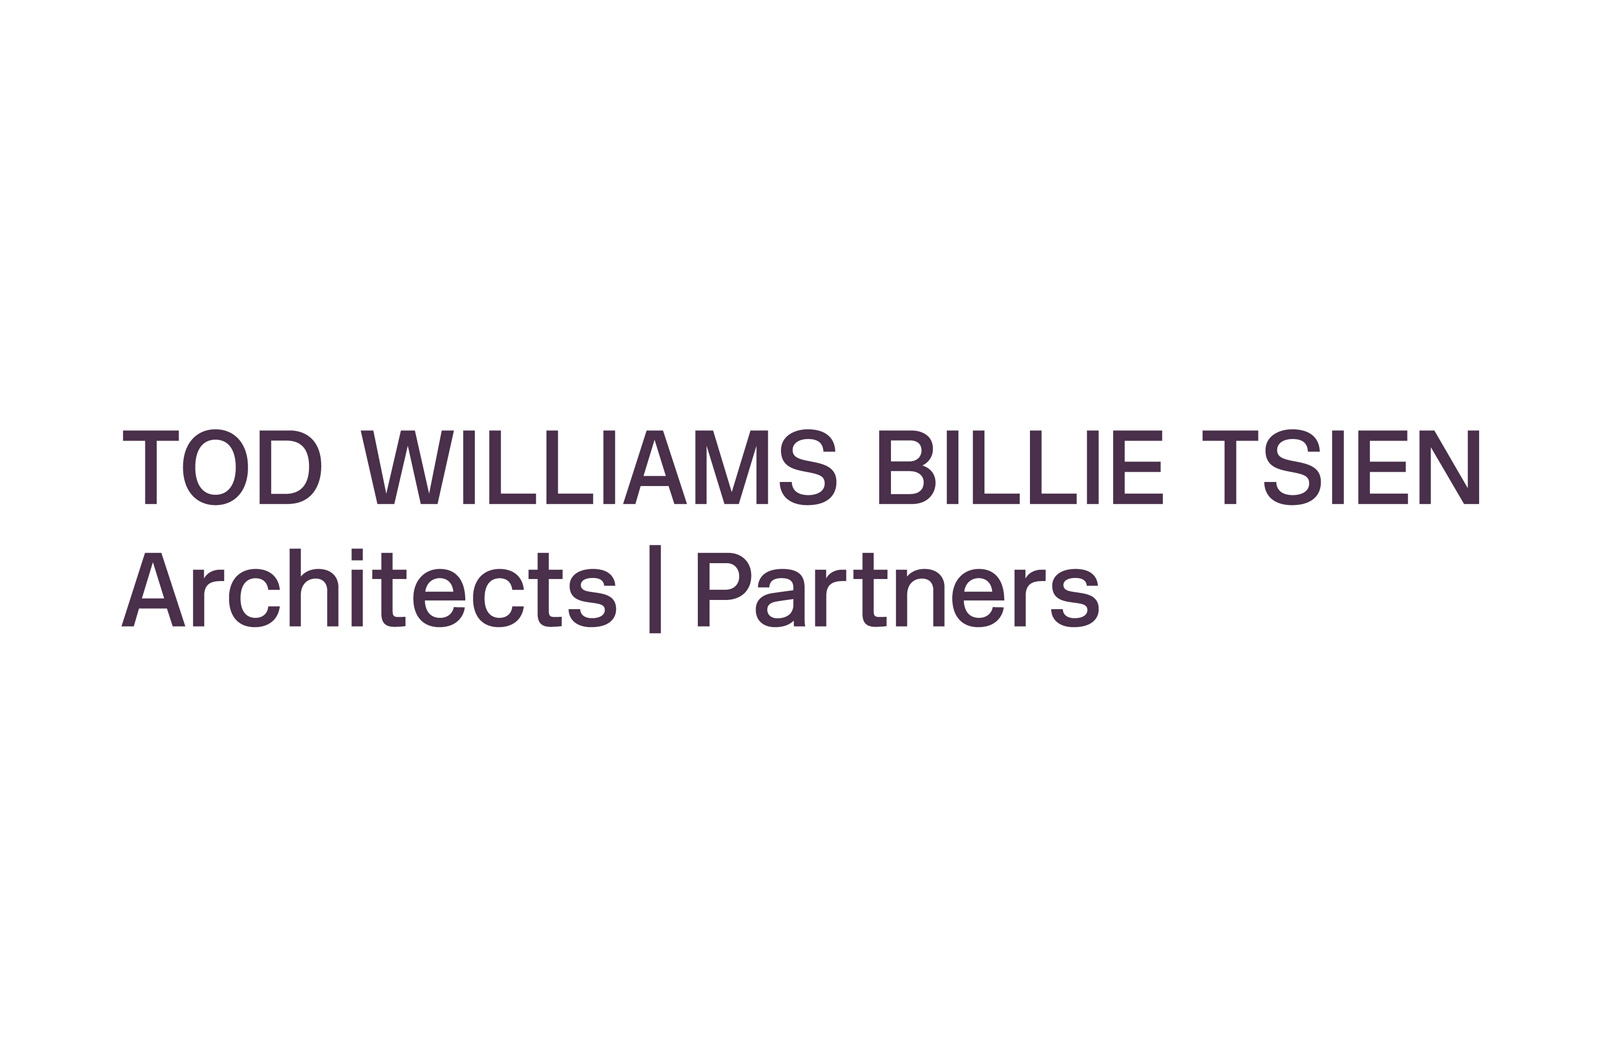 Tod Williams Billie Tsien Architects I Partners  - MTWTF